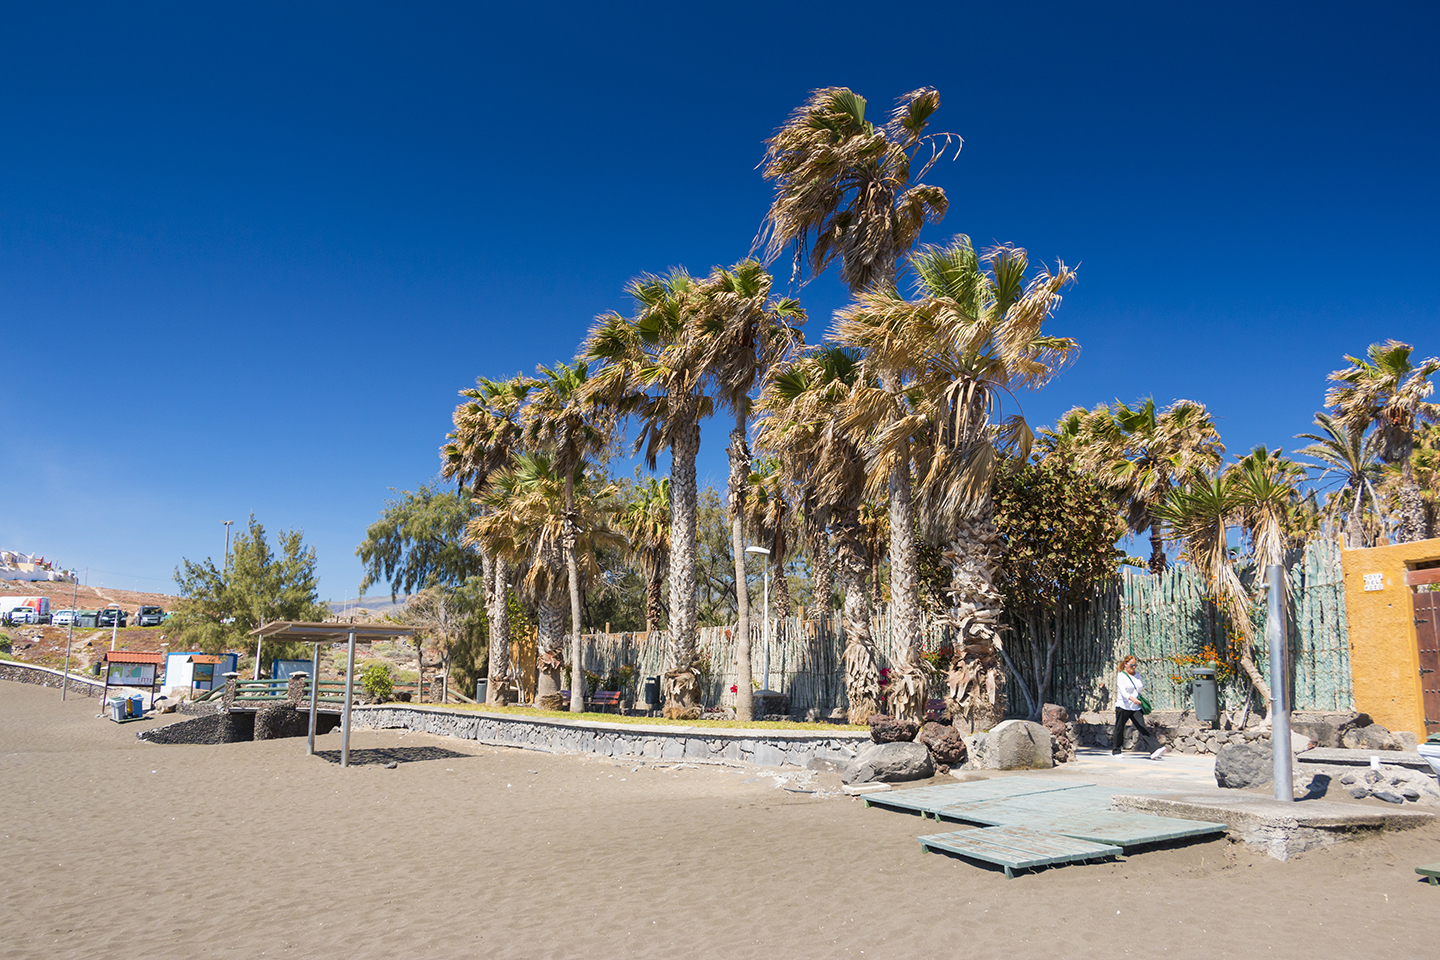 Hoya del Pozo beach with palm trees